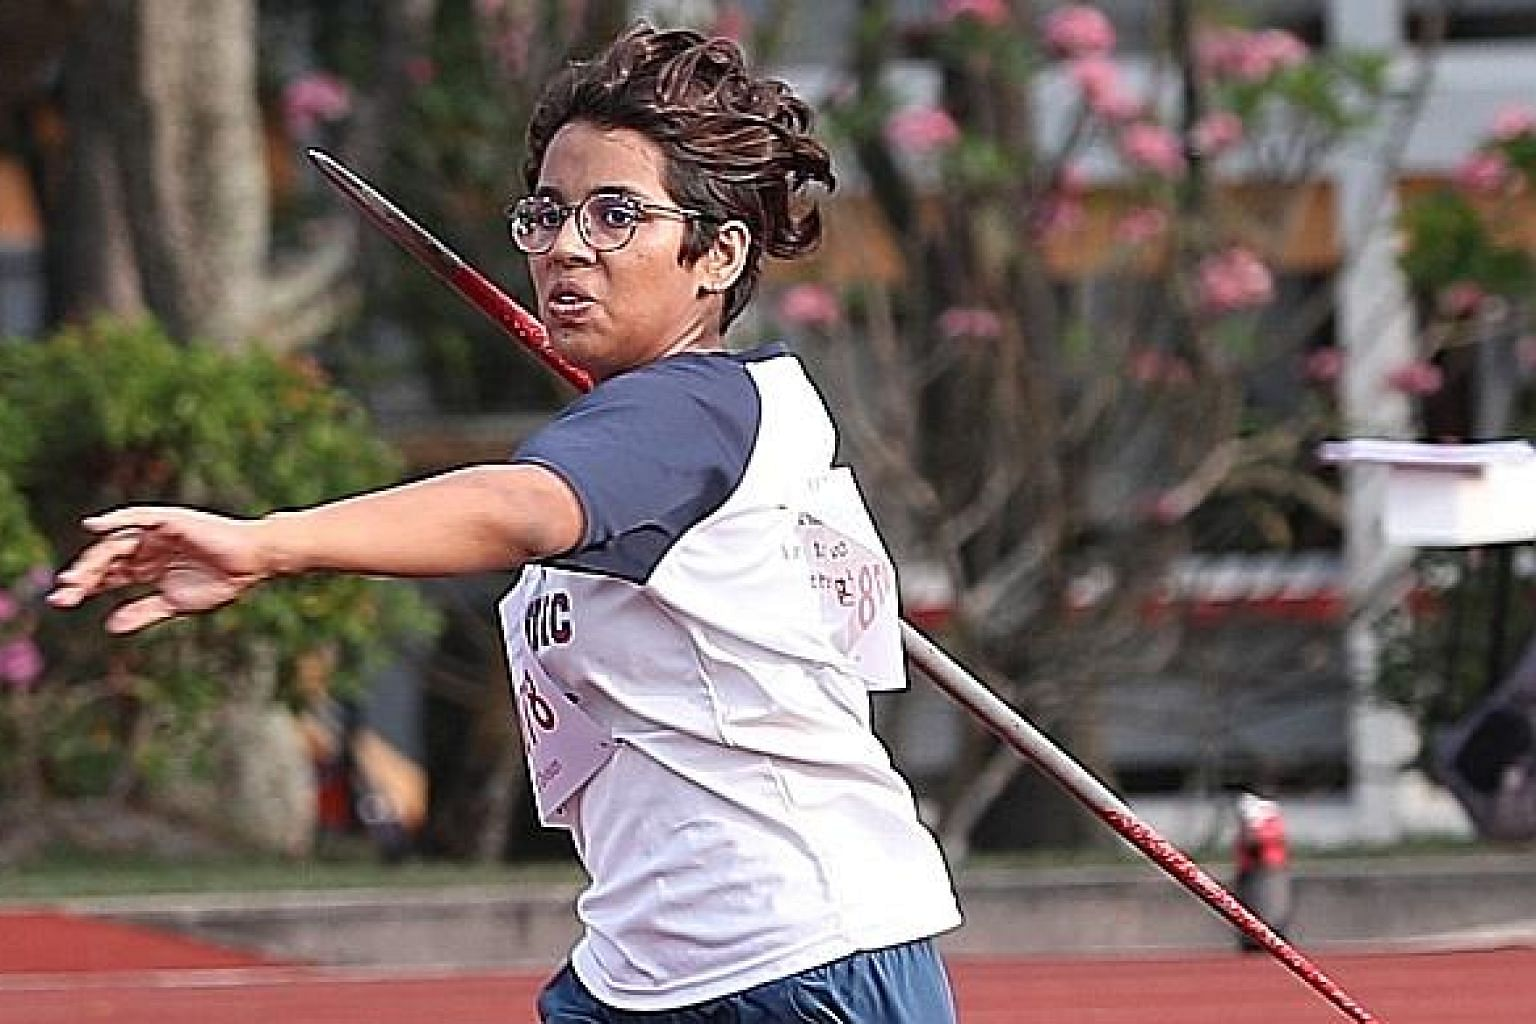 Cedar Girls' Daakshayani Negi showing good form en route to her winning throw of 34.70m at the Schools National athletics meet.